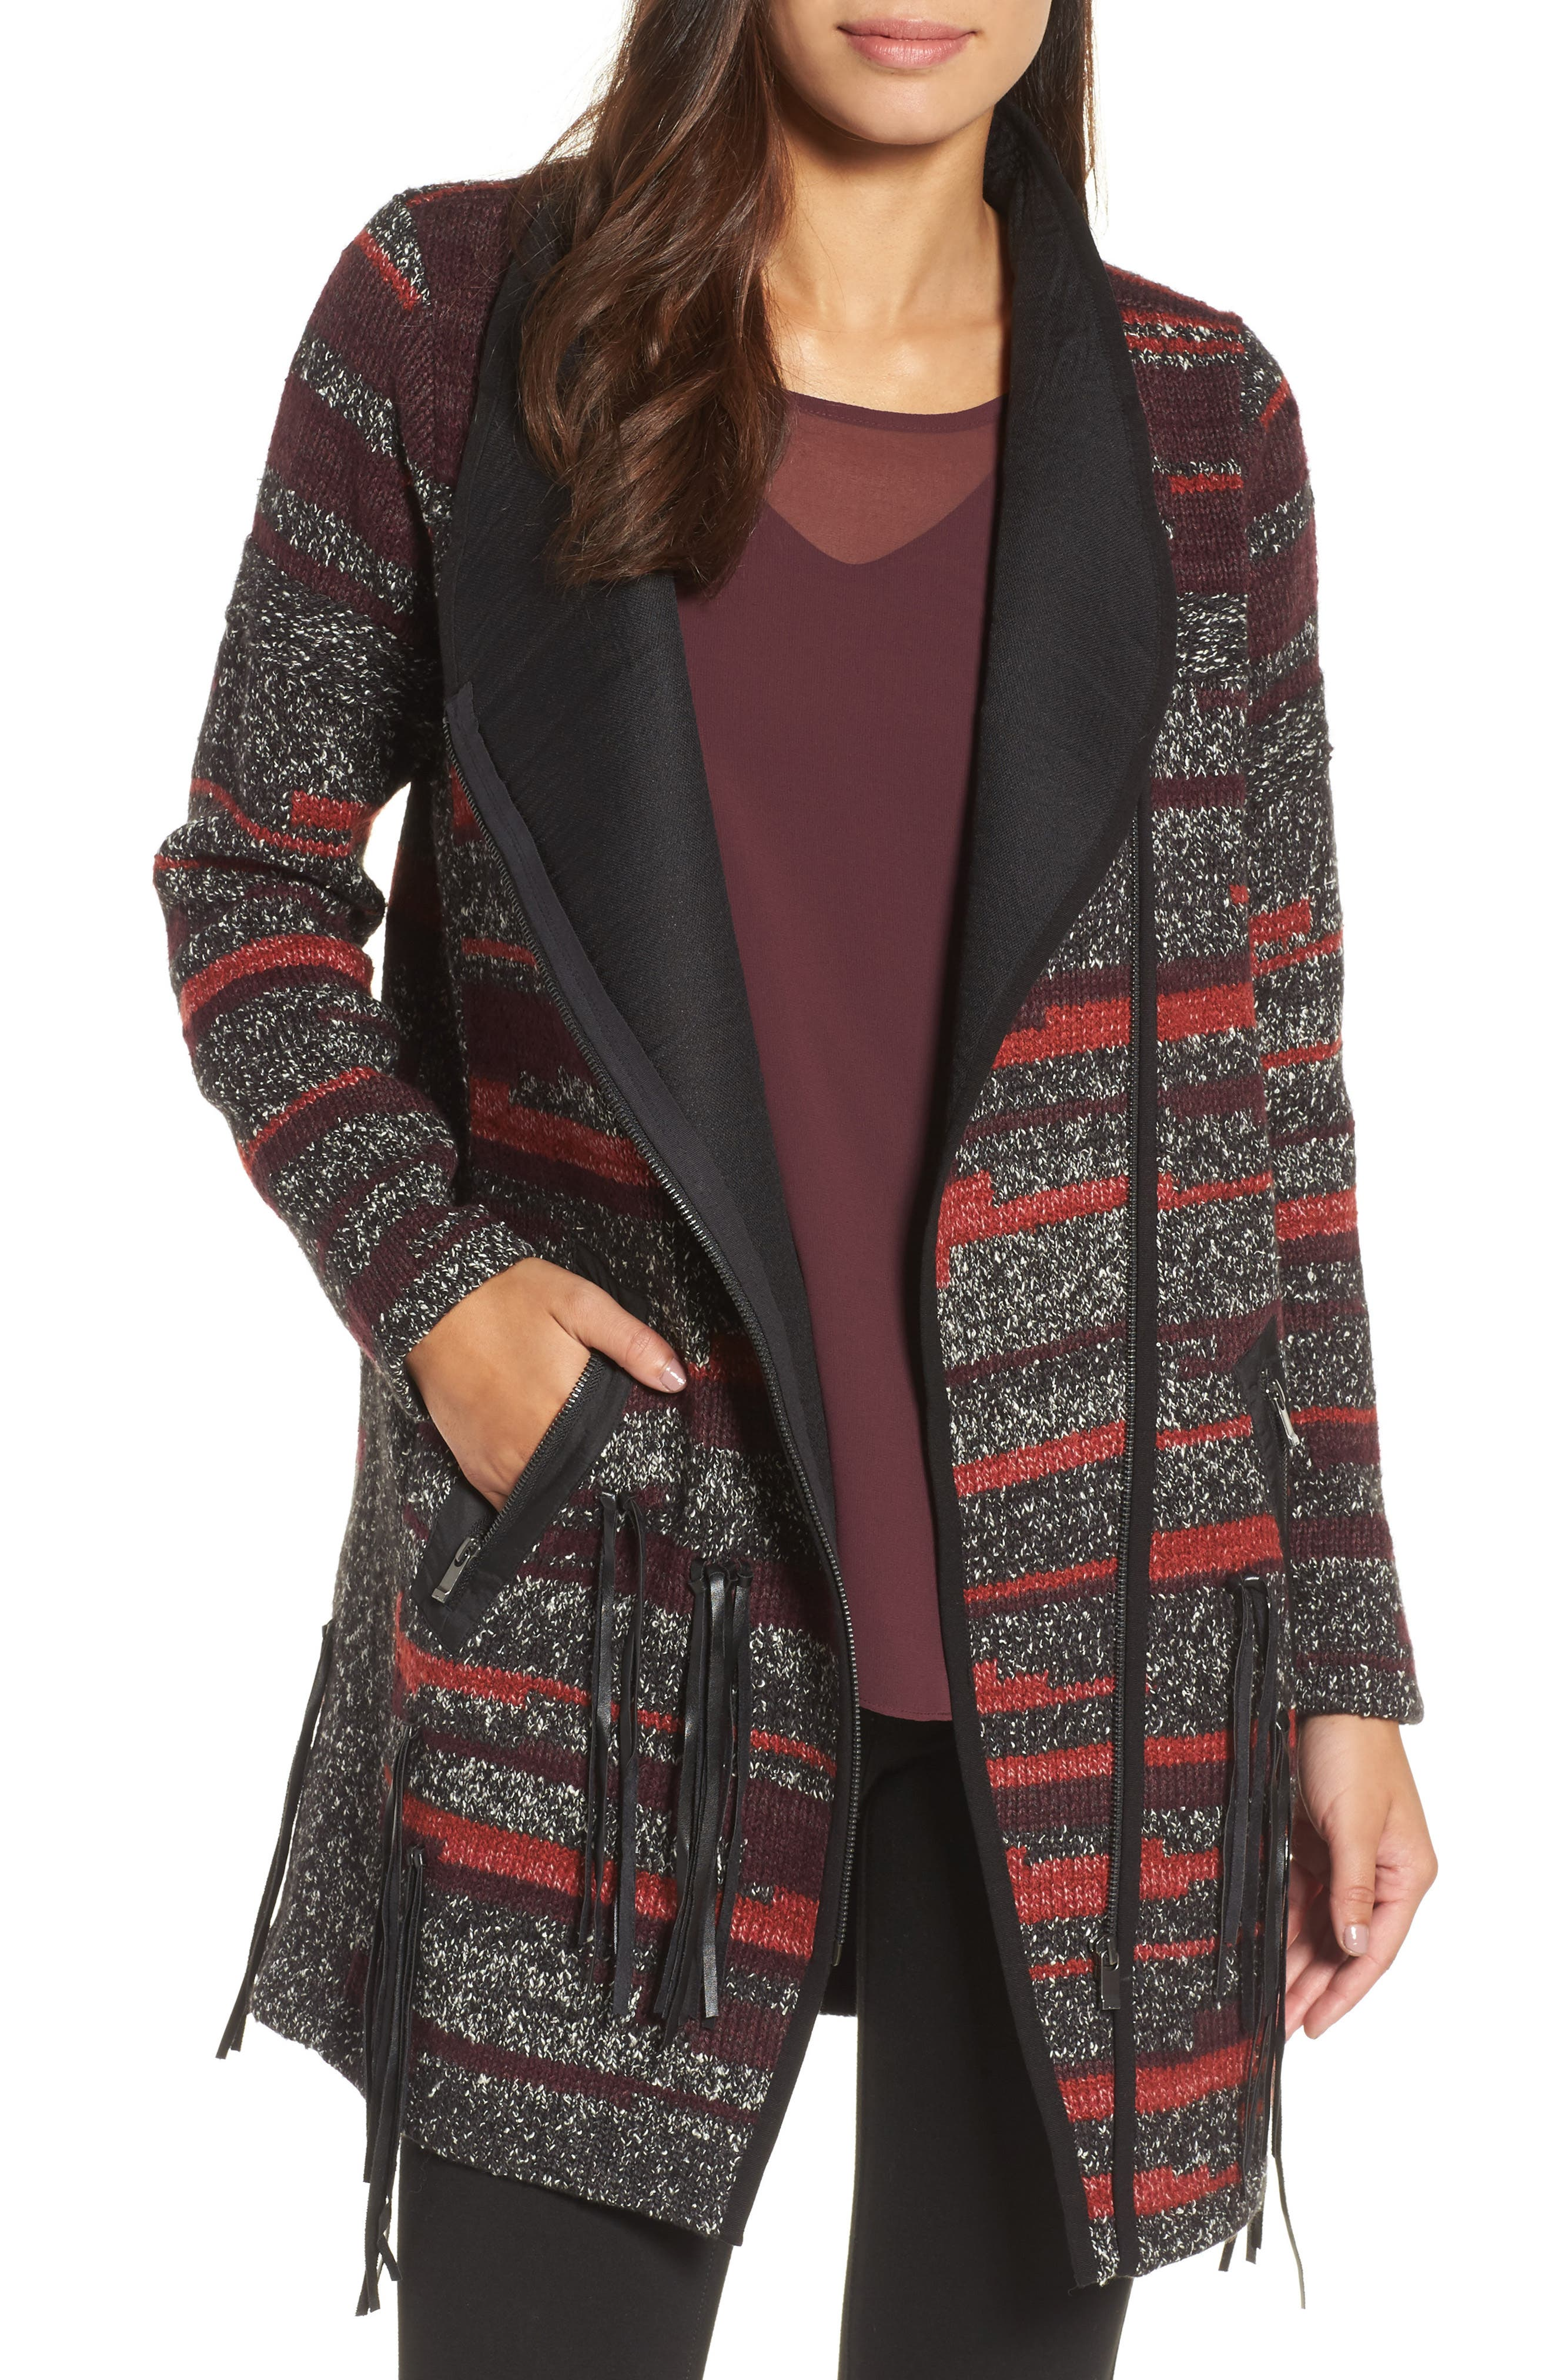 Nic + Zoe Visionary Faux Leather Trim Jacket (Regular & Petite)